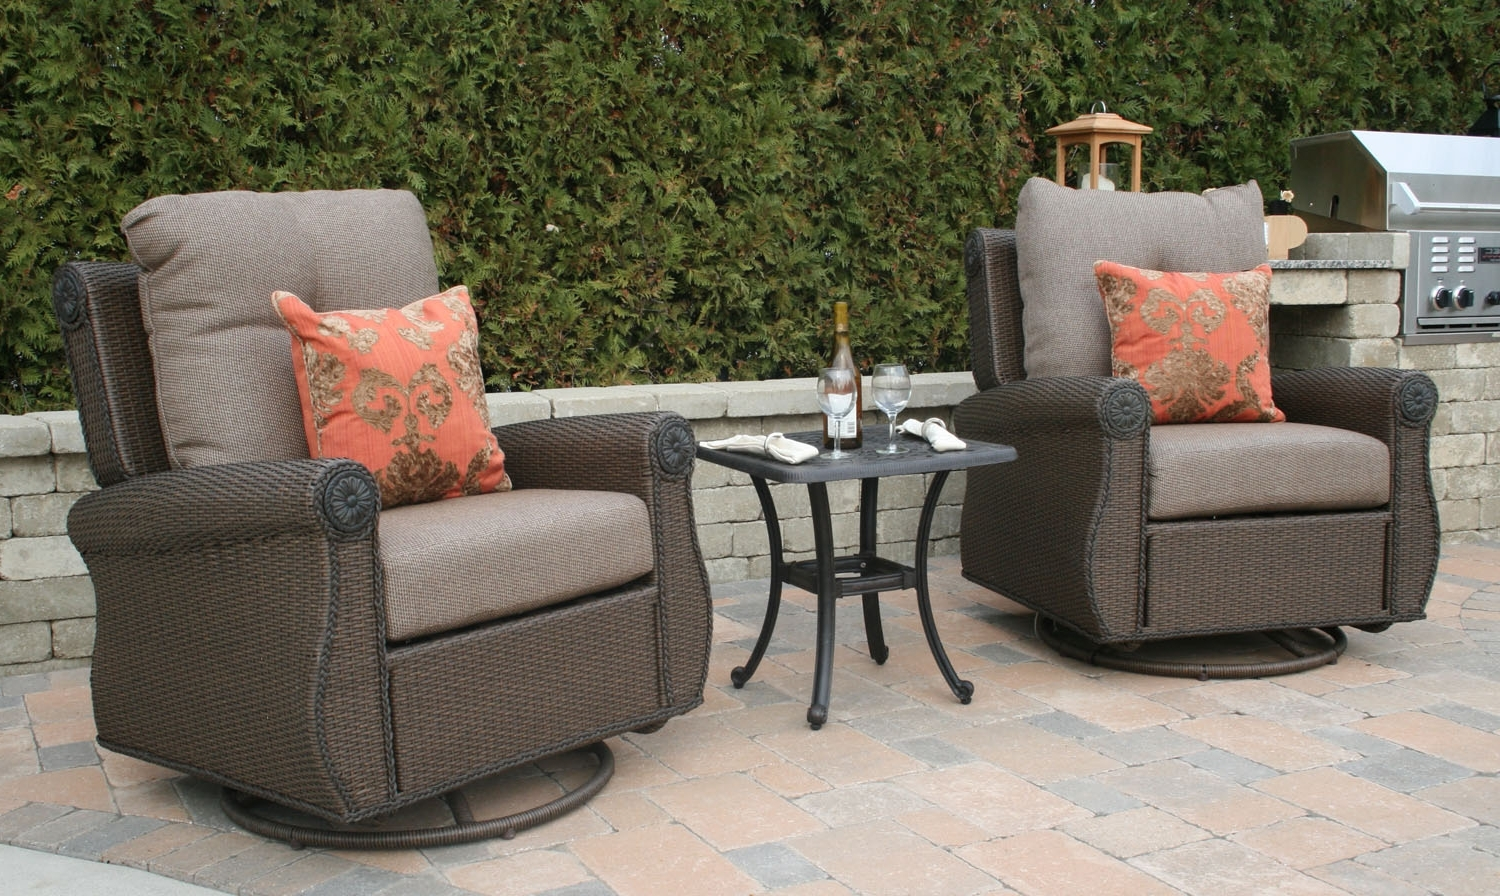 Aluminum Patio Rocking Chairs With Regard To Well Liked Giovanna Luxury All Weather Wicker/cast Aluminum Patio Furniture (View 4 of 20)